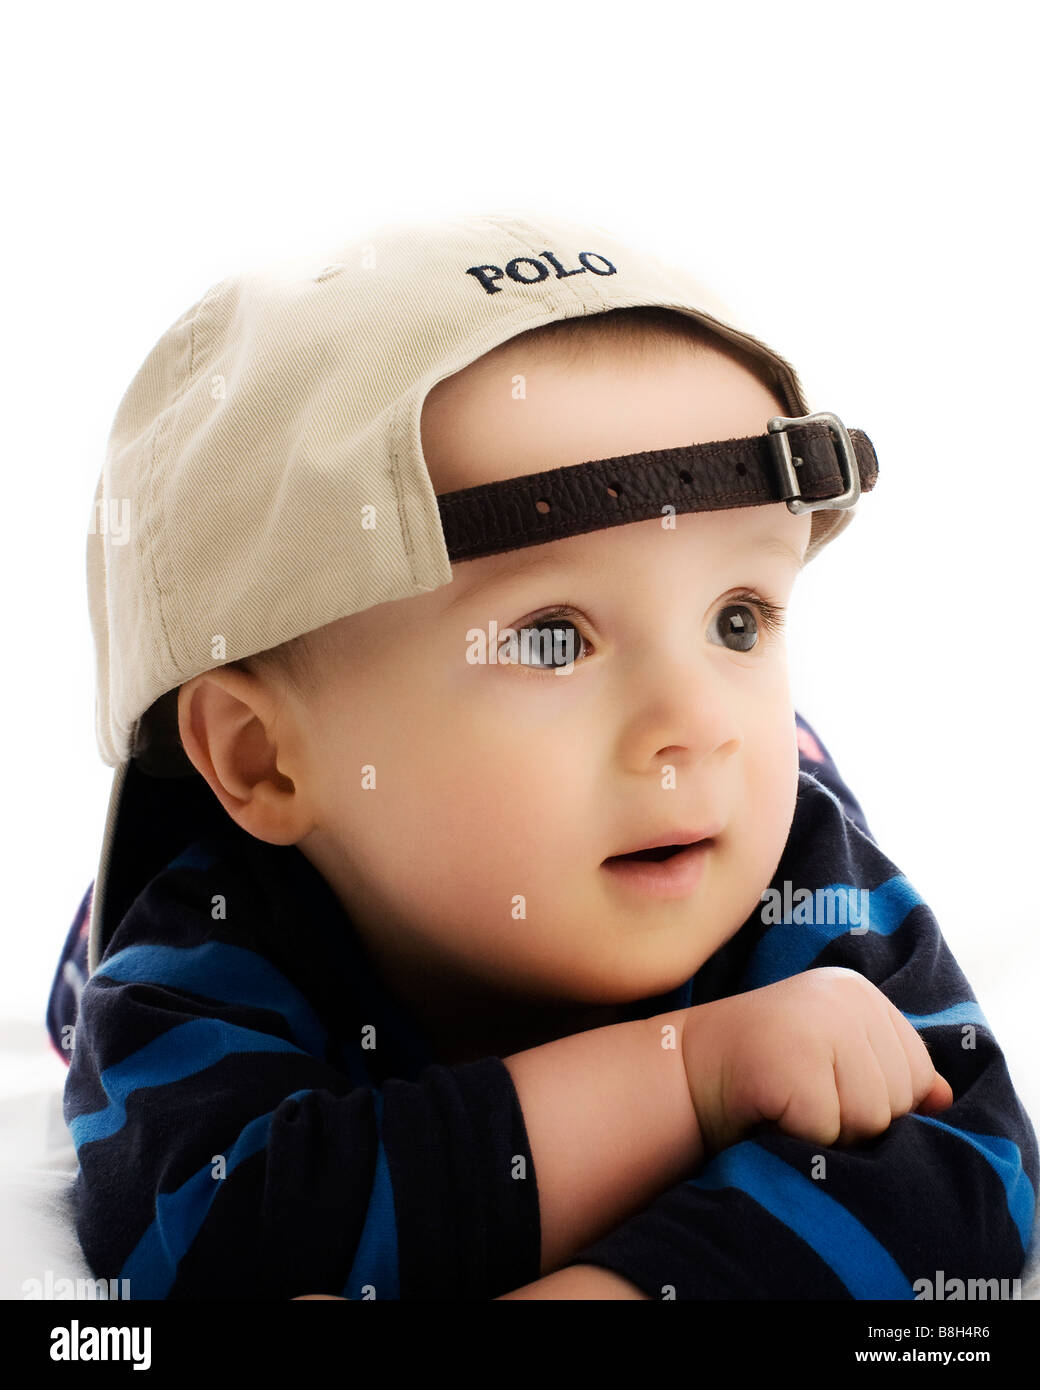 10 month old Baby boy wearing Polo baseball cap Stock Photo ... d6ce0edd5ed